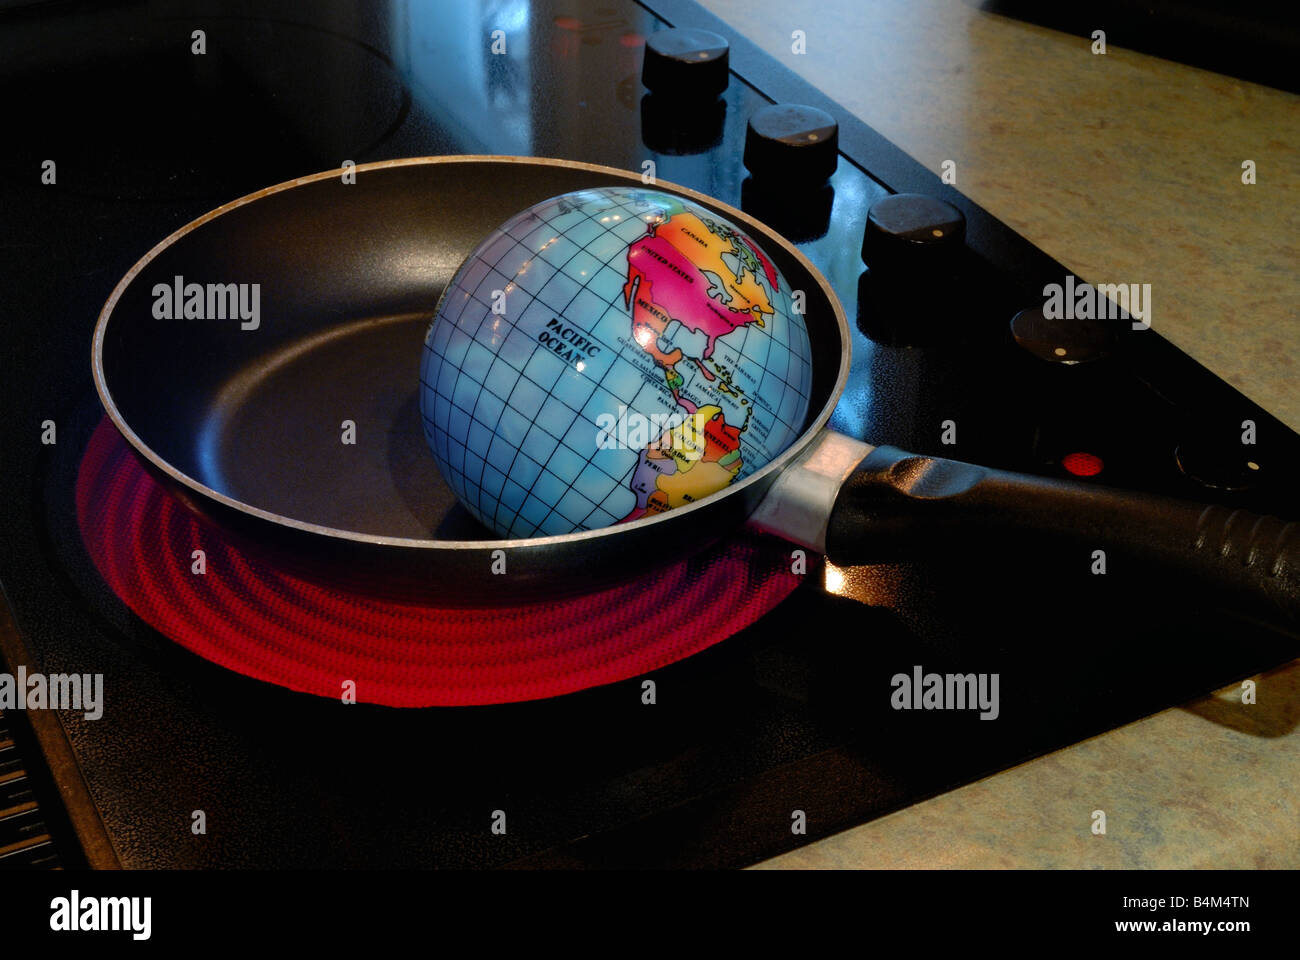 A globe is shown frying in a skillet on a hot stove burner representing the concept of Global Warming - Stock Image